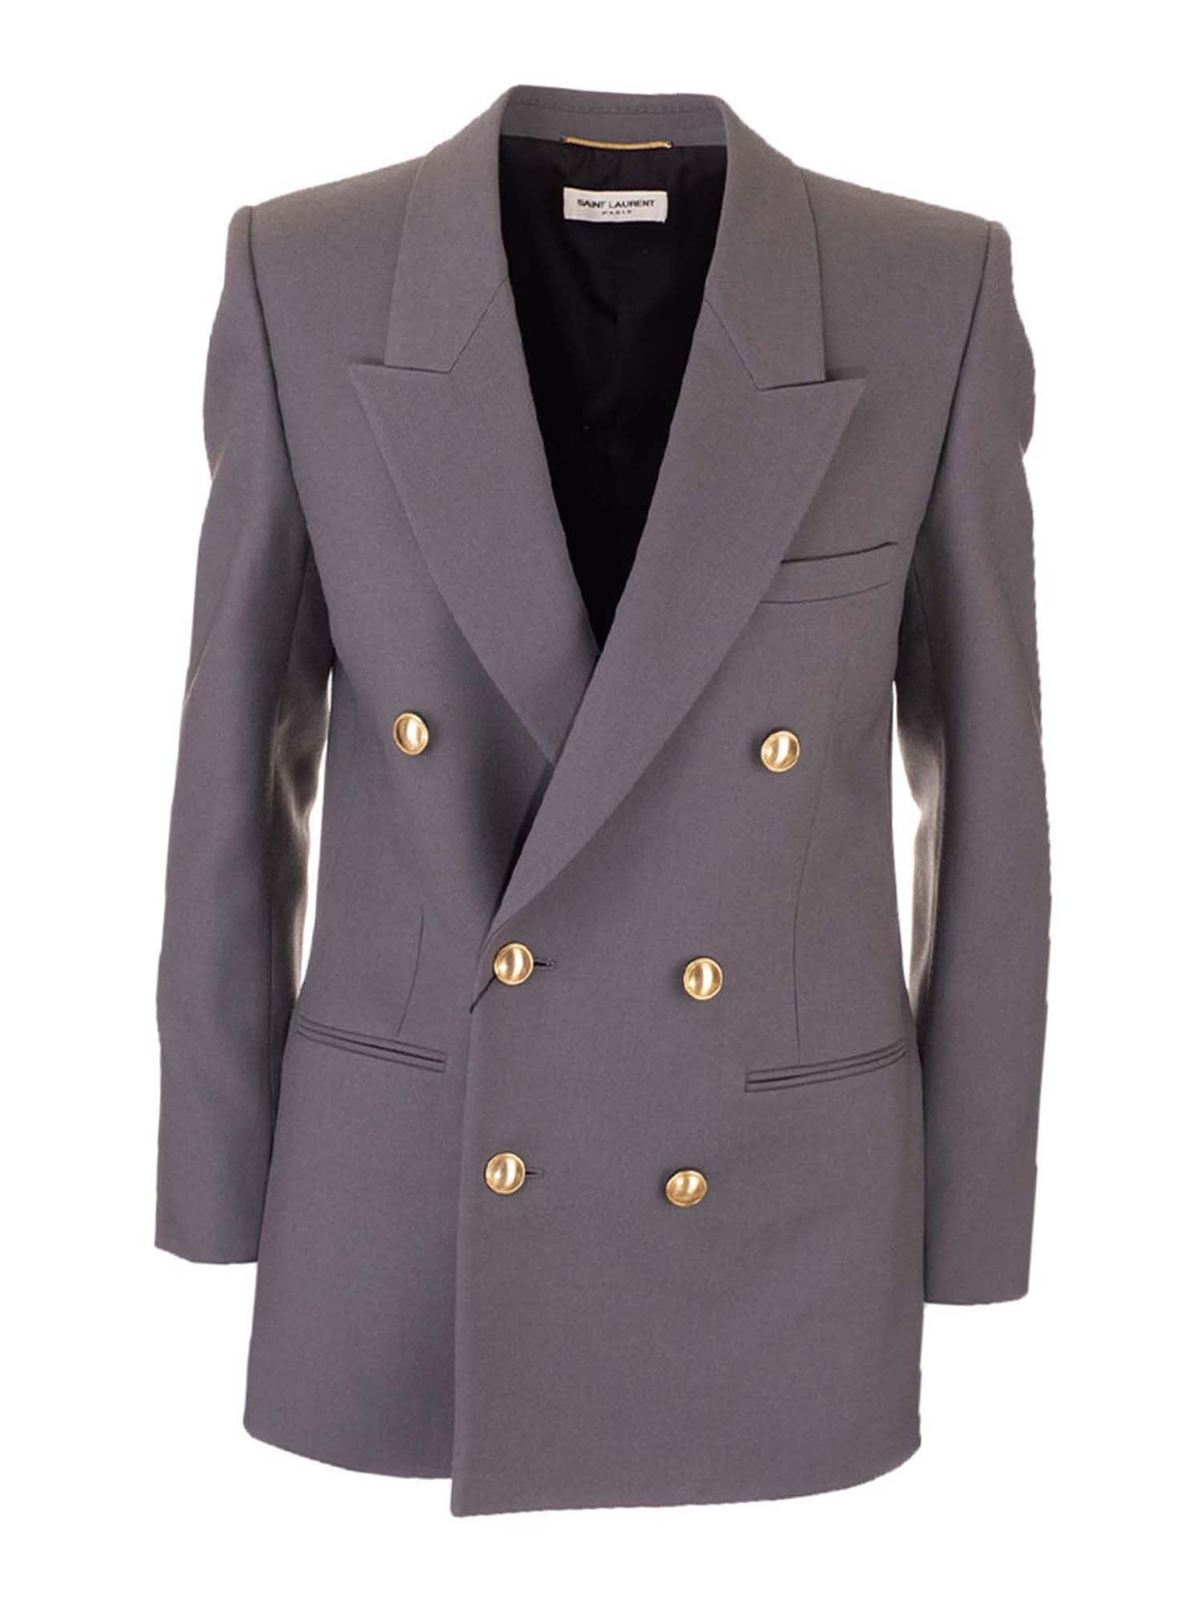 Saint Laurent DOUBLE-BREASTED JACKET IN FOG COLOR